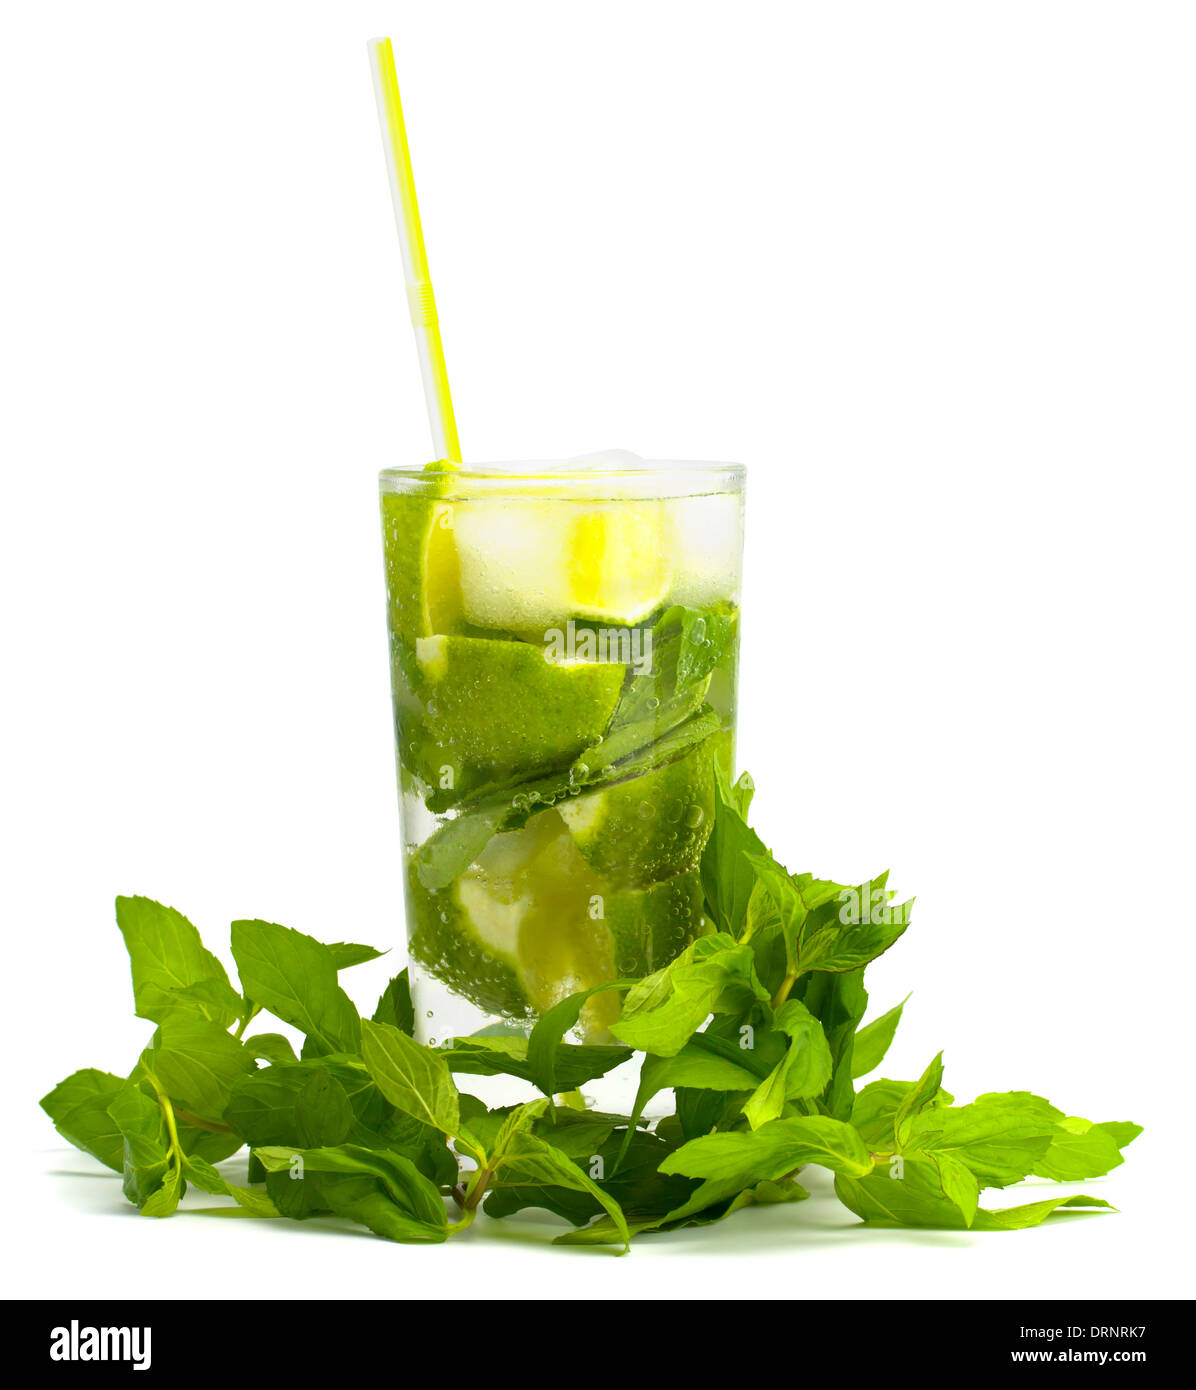 Alcoholic drink of Mojito and mint on a white background - Stock Image